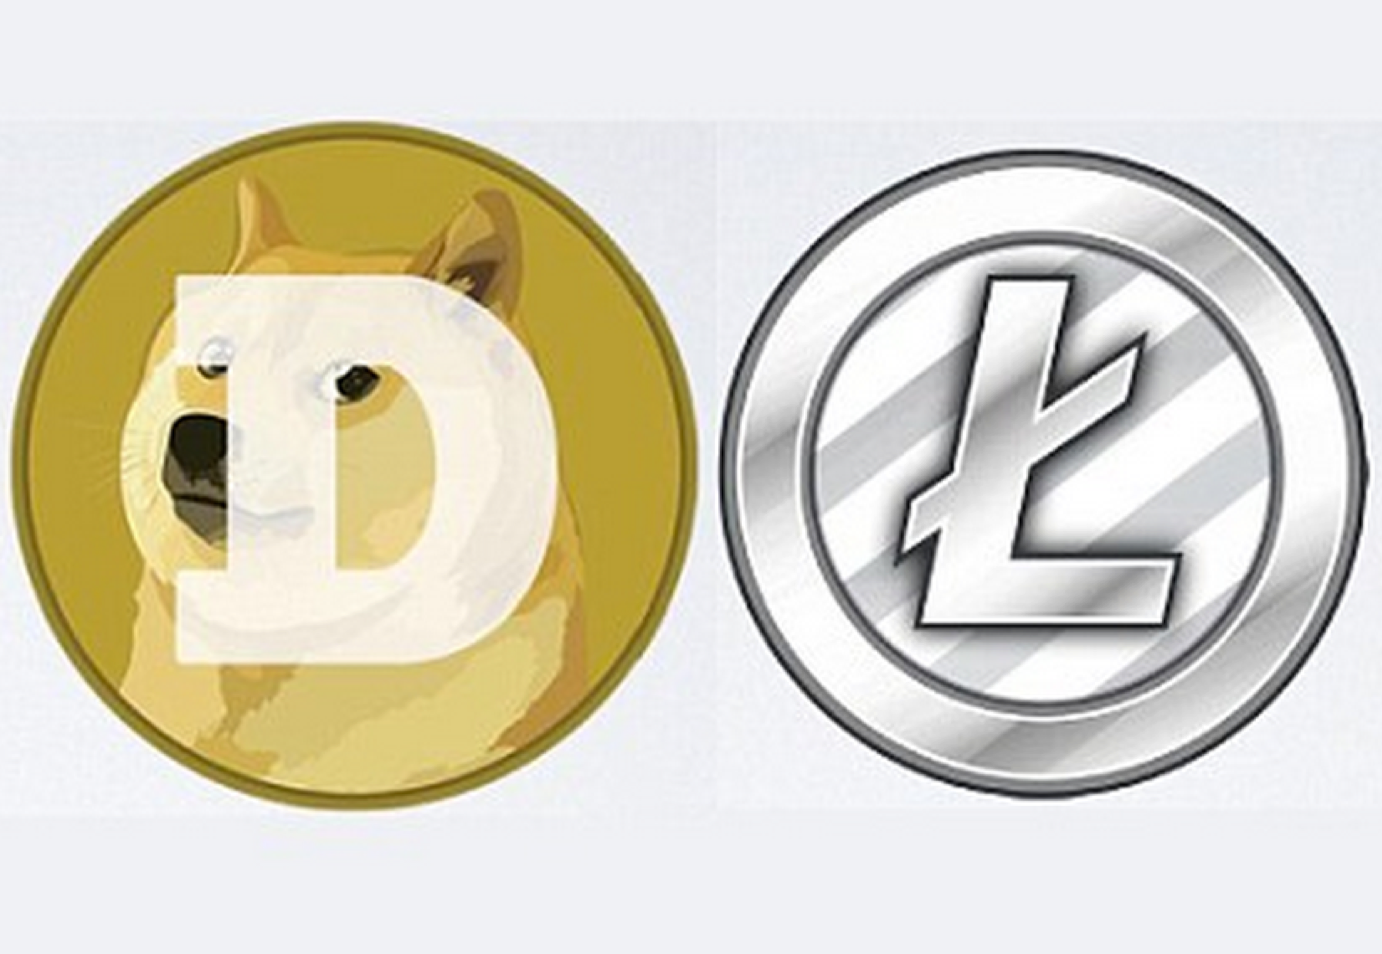 All Things Alt: Shibe Social, <bold>Blackcoin</bold> Boom and the Twin Easter Egg